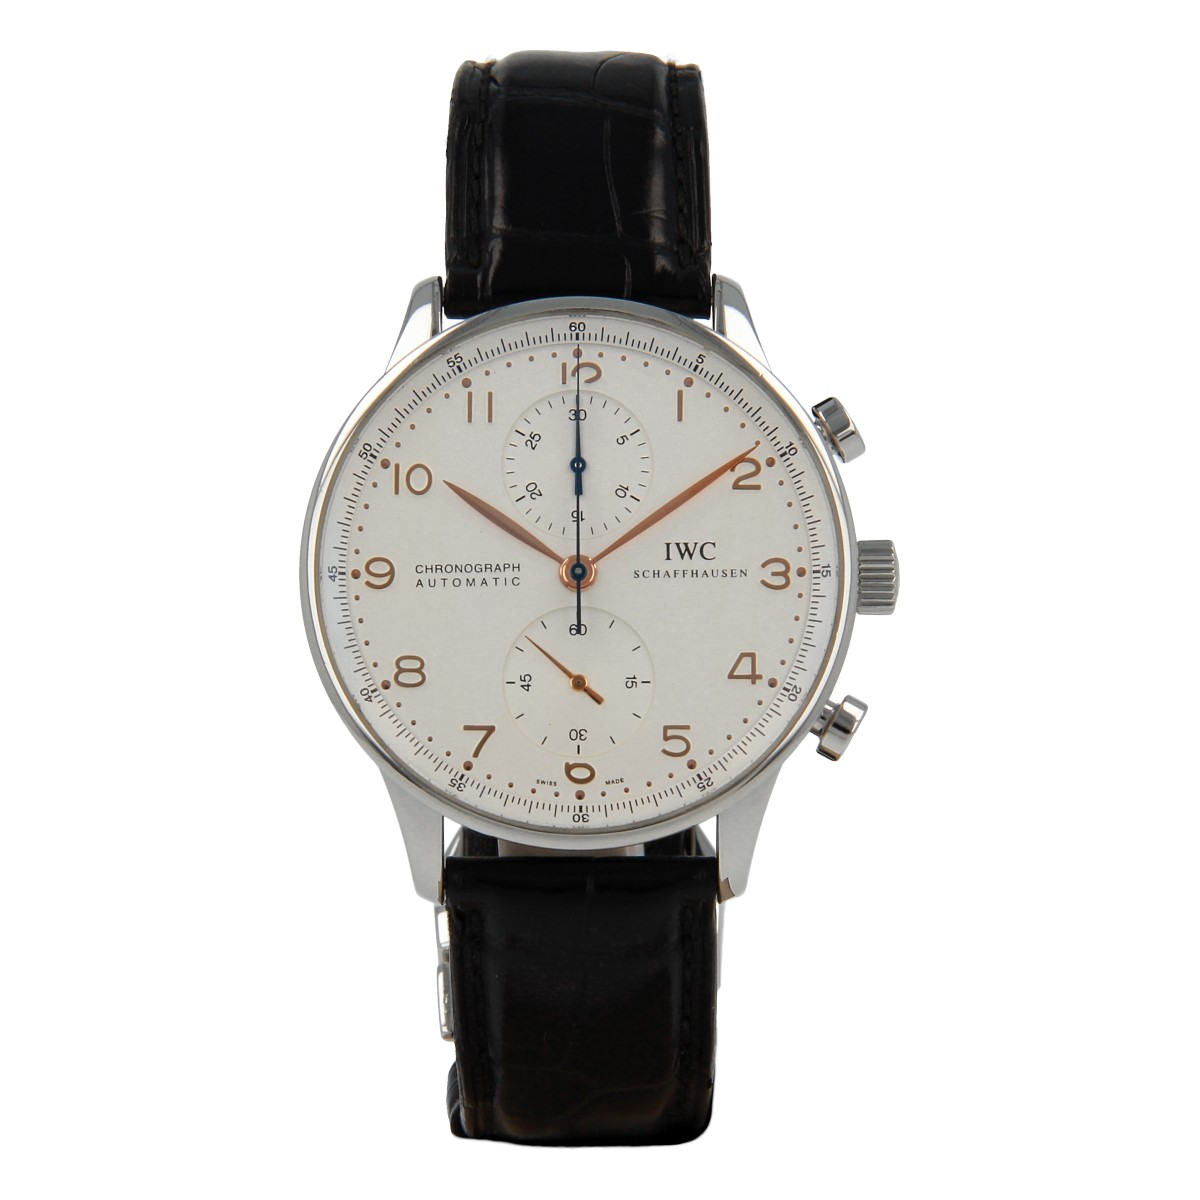 IWC Portugieser Chrono-Automatic IW3714-01 | Buy pre-owned IWC Schaffhausen watch